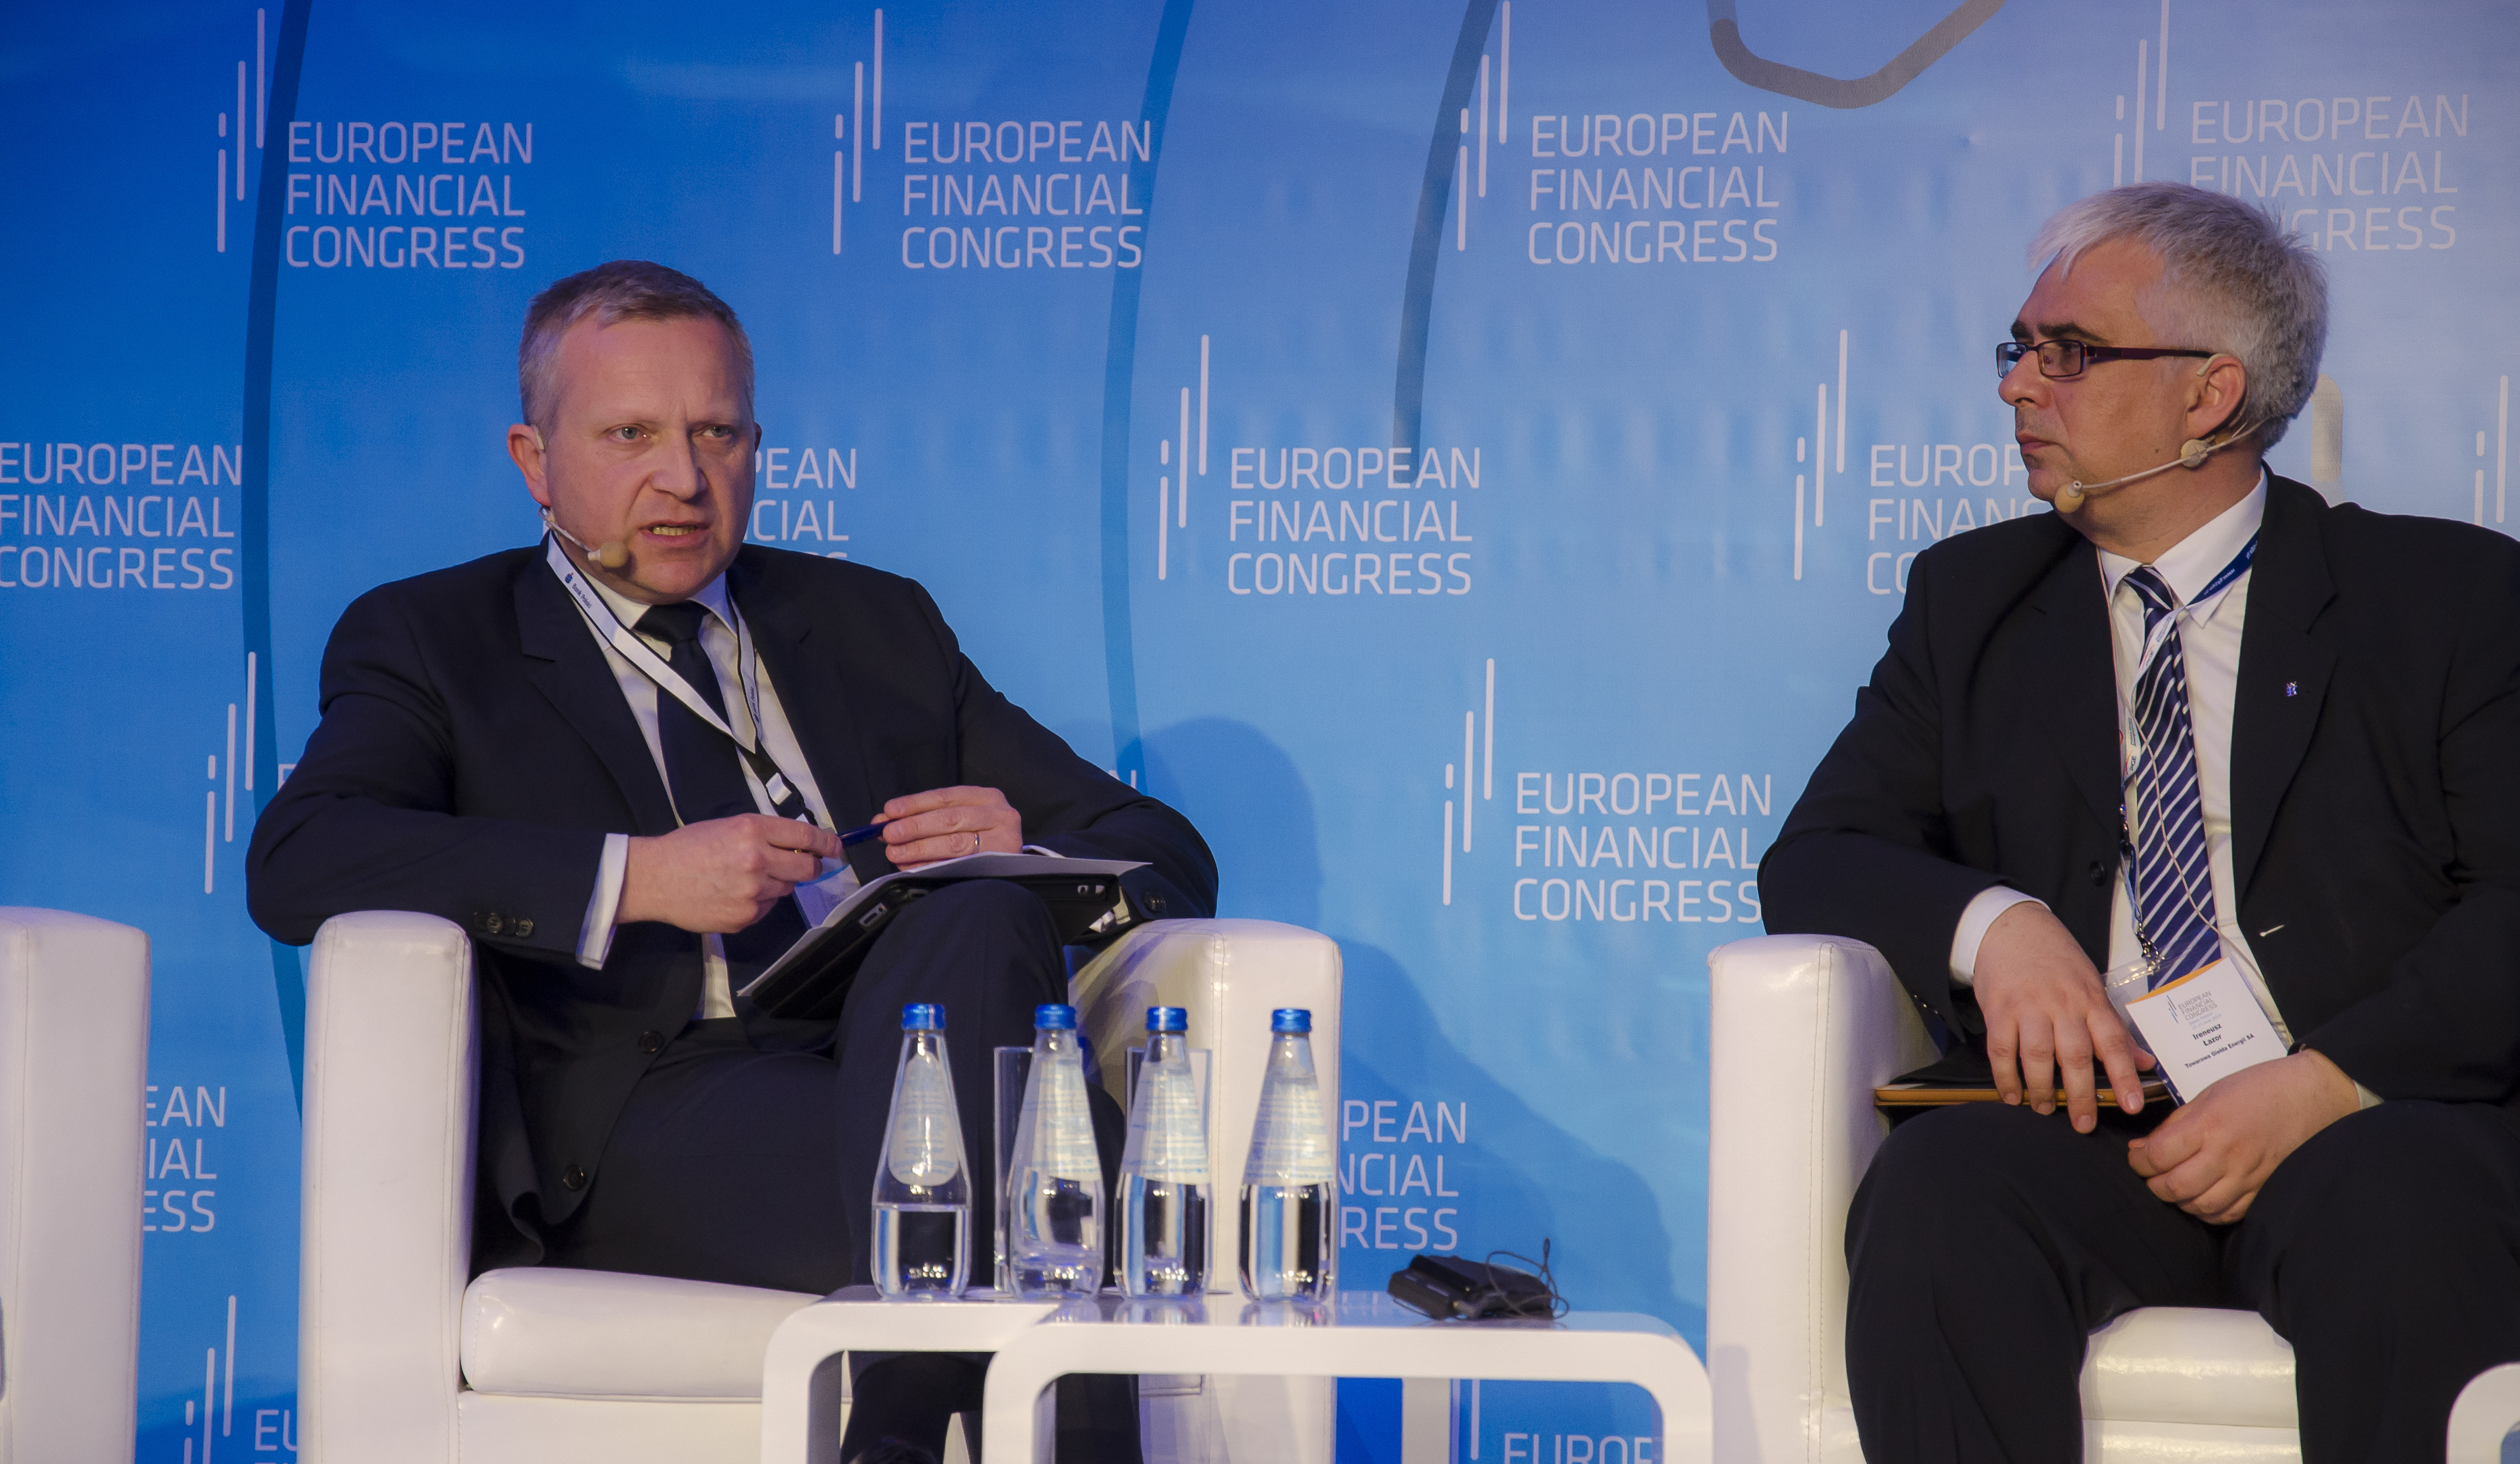 European Financial Congress 2014 - Is it possible to further integrate the EU politically and to increase the competitiveness of the European economy without ensuring energy security? – the domestic perspective